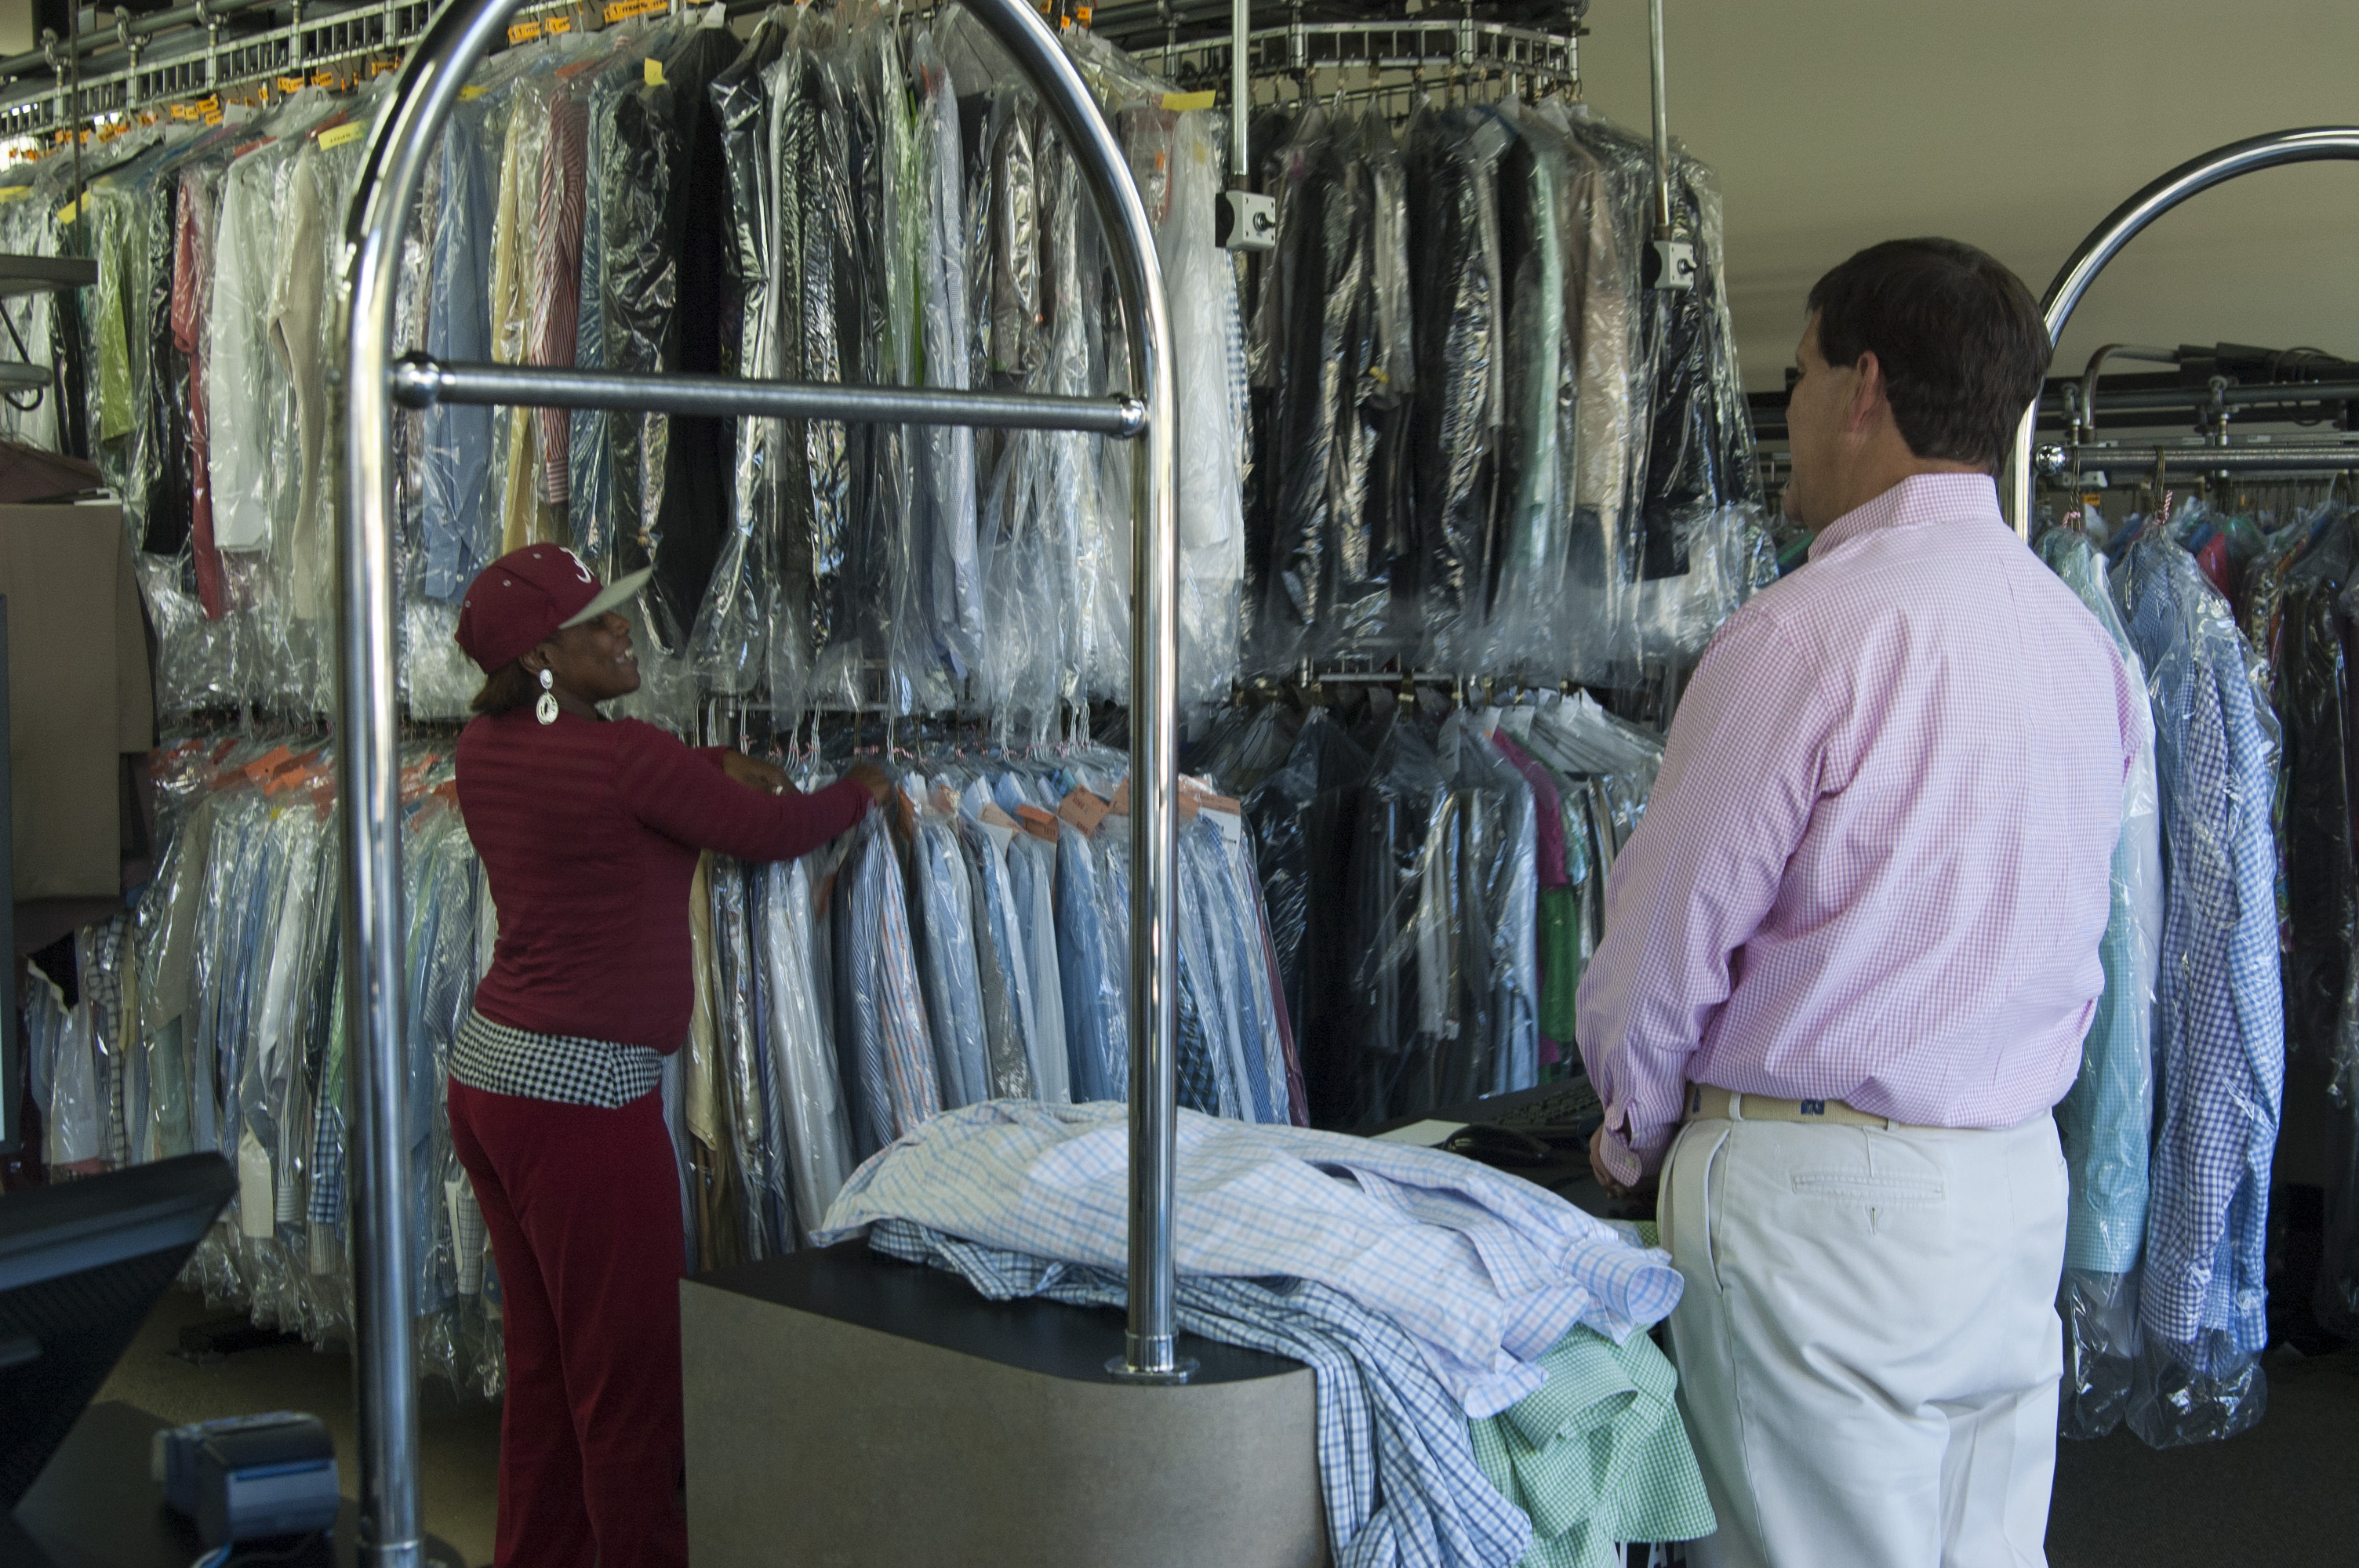 One Of Our Hy Loyal Customers Picking Up His Orders And Dropping Off This Week S Dry Cleaning Laundry